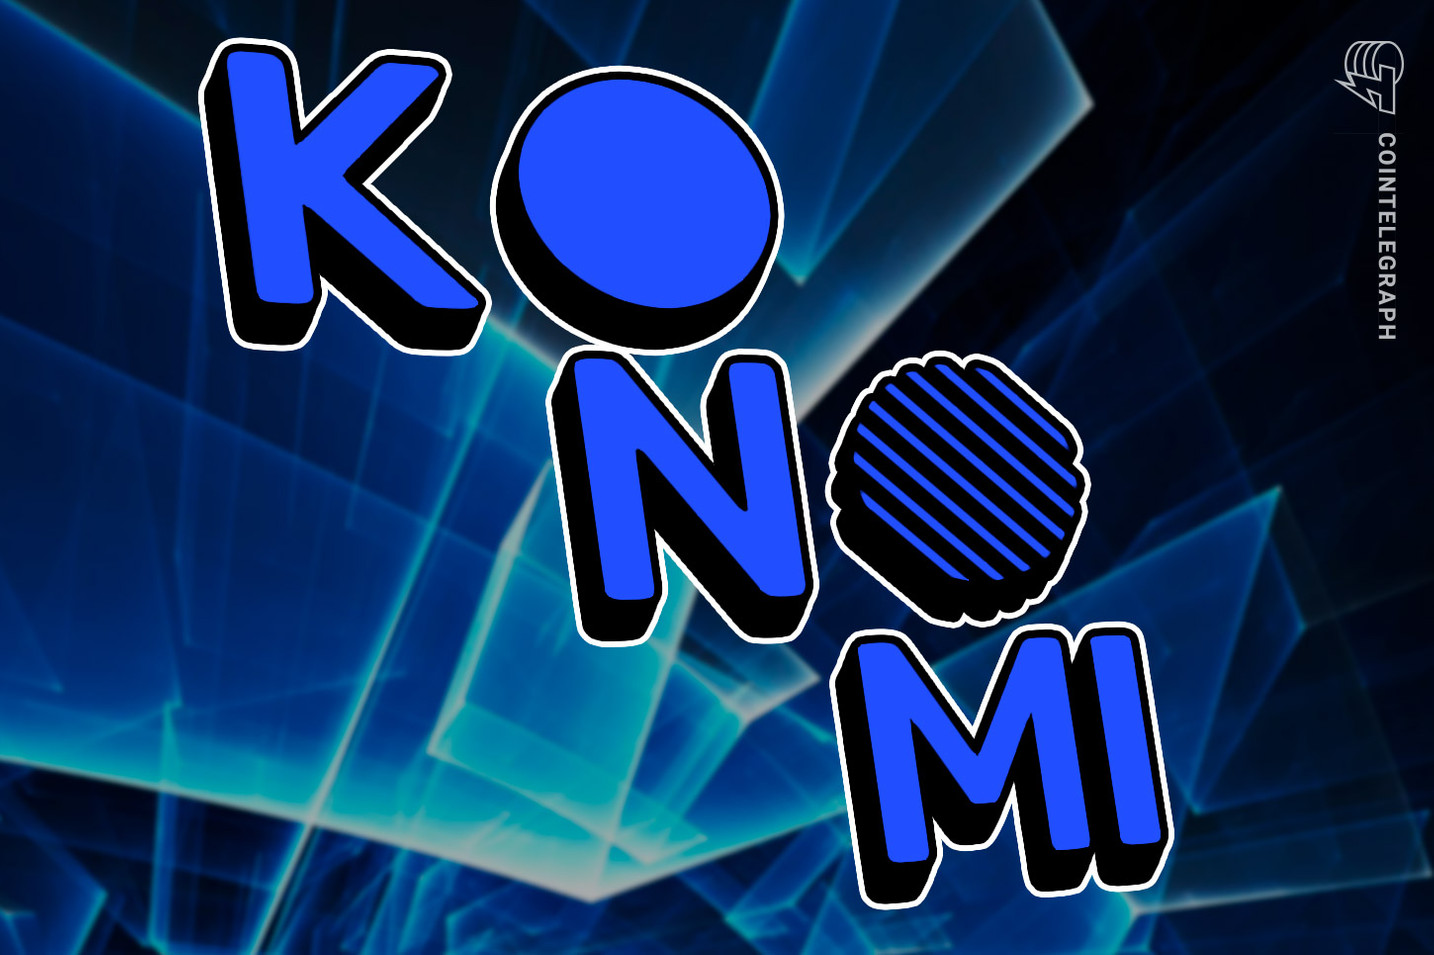 Konomi Network raises $5 million and launches an initial DEX offering